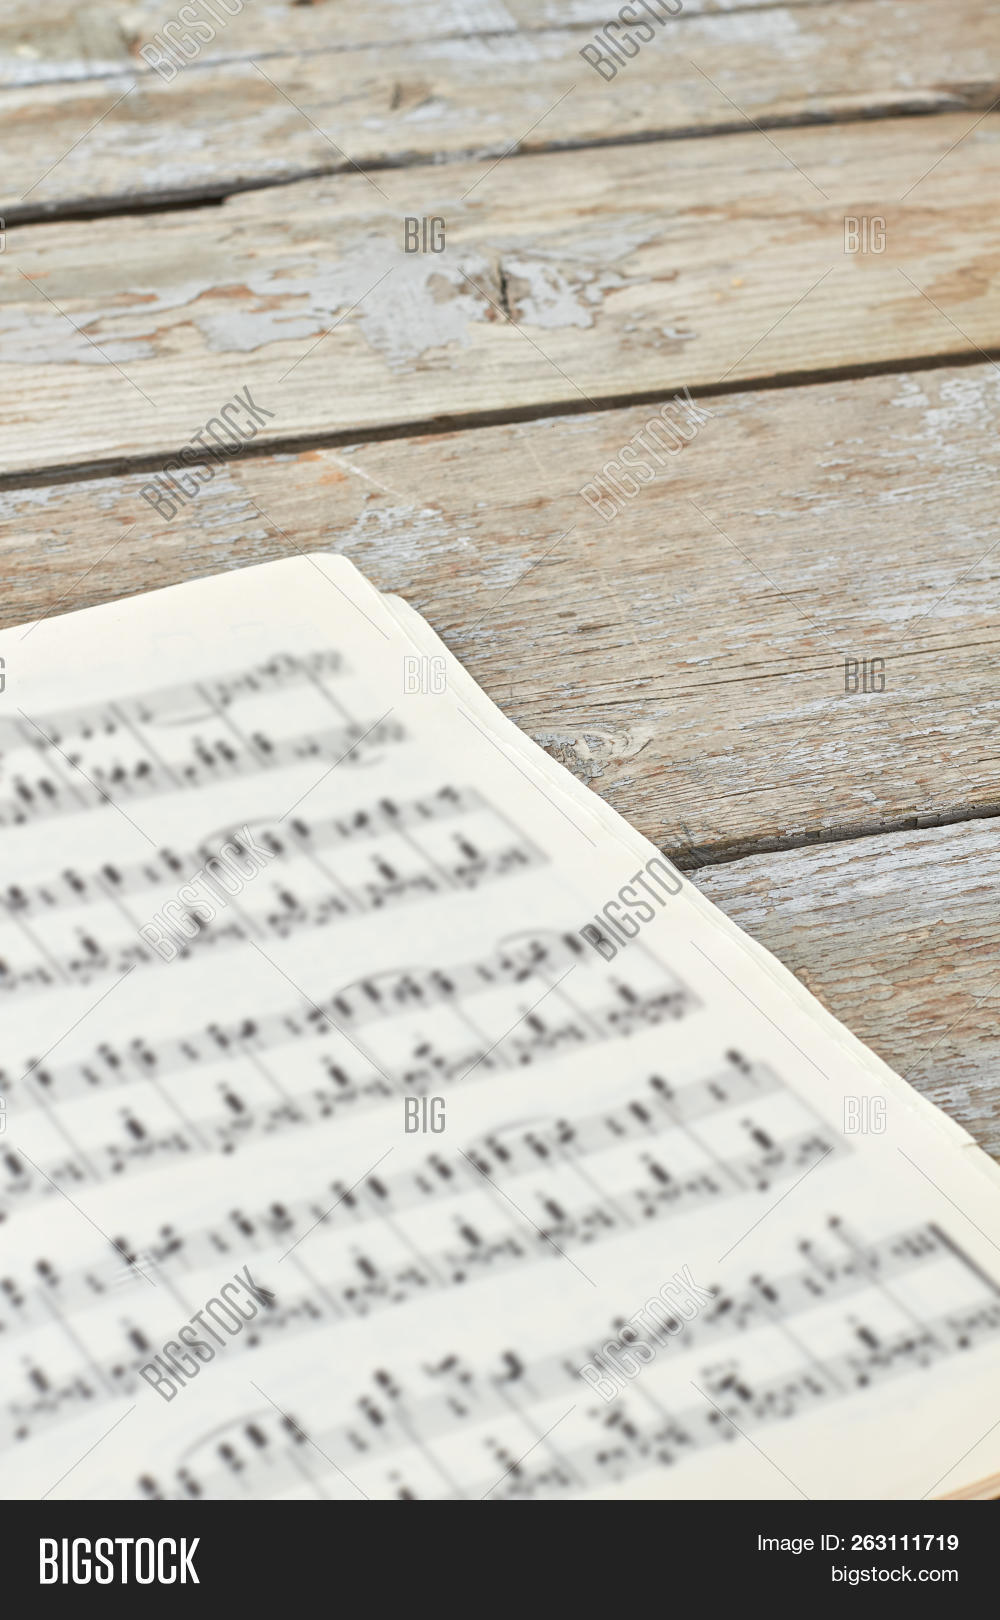 Musical Notes Image & Photo (Free Trial)   Bigstock